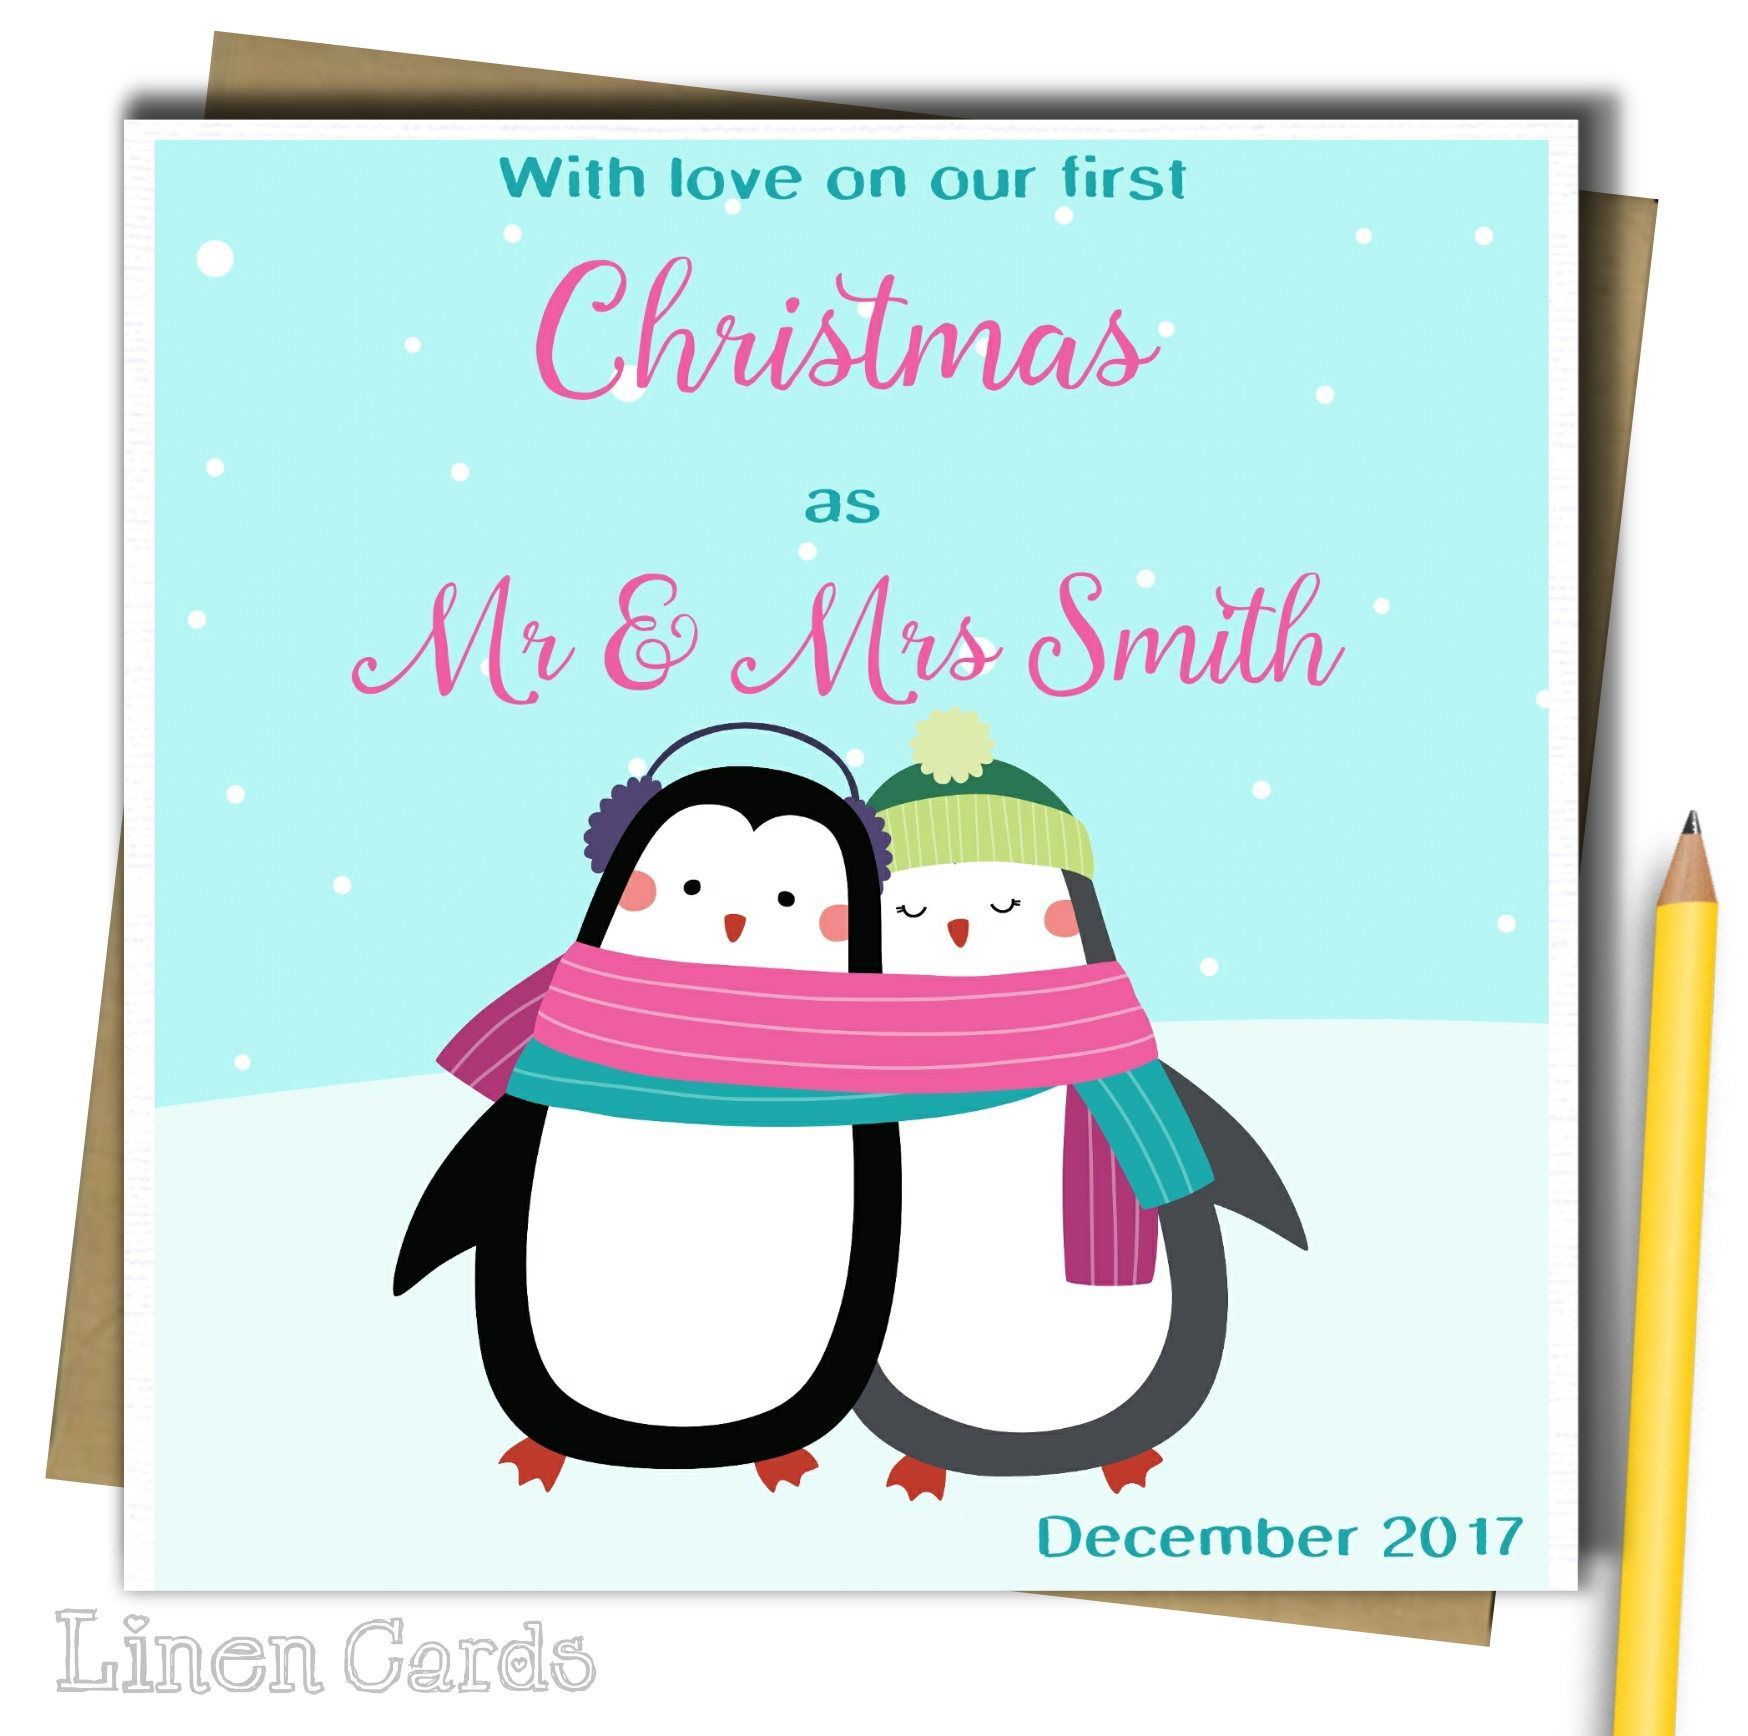 Personalised 1st first christmas as husband wife card can be personalised first christmas as husband wife card can be personalised with any message husband christmas card wife christmas card kristyandbryce Choice Image